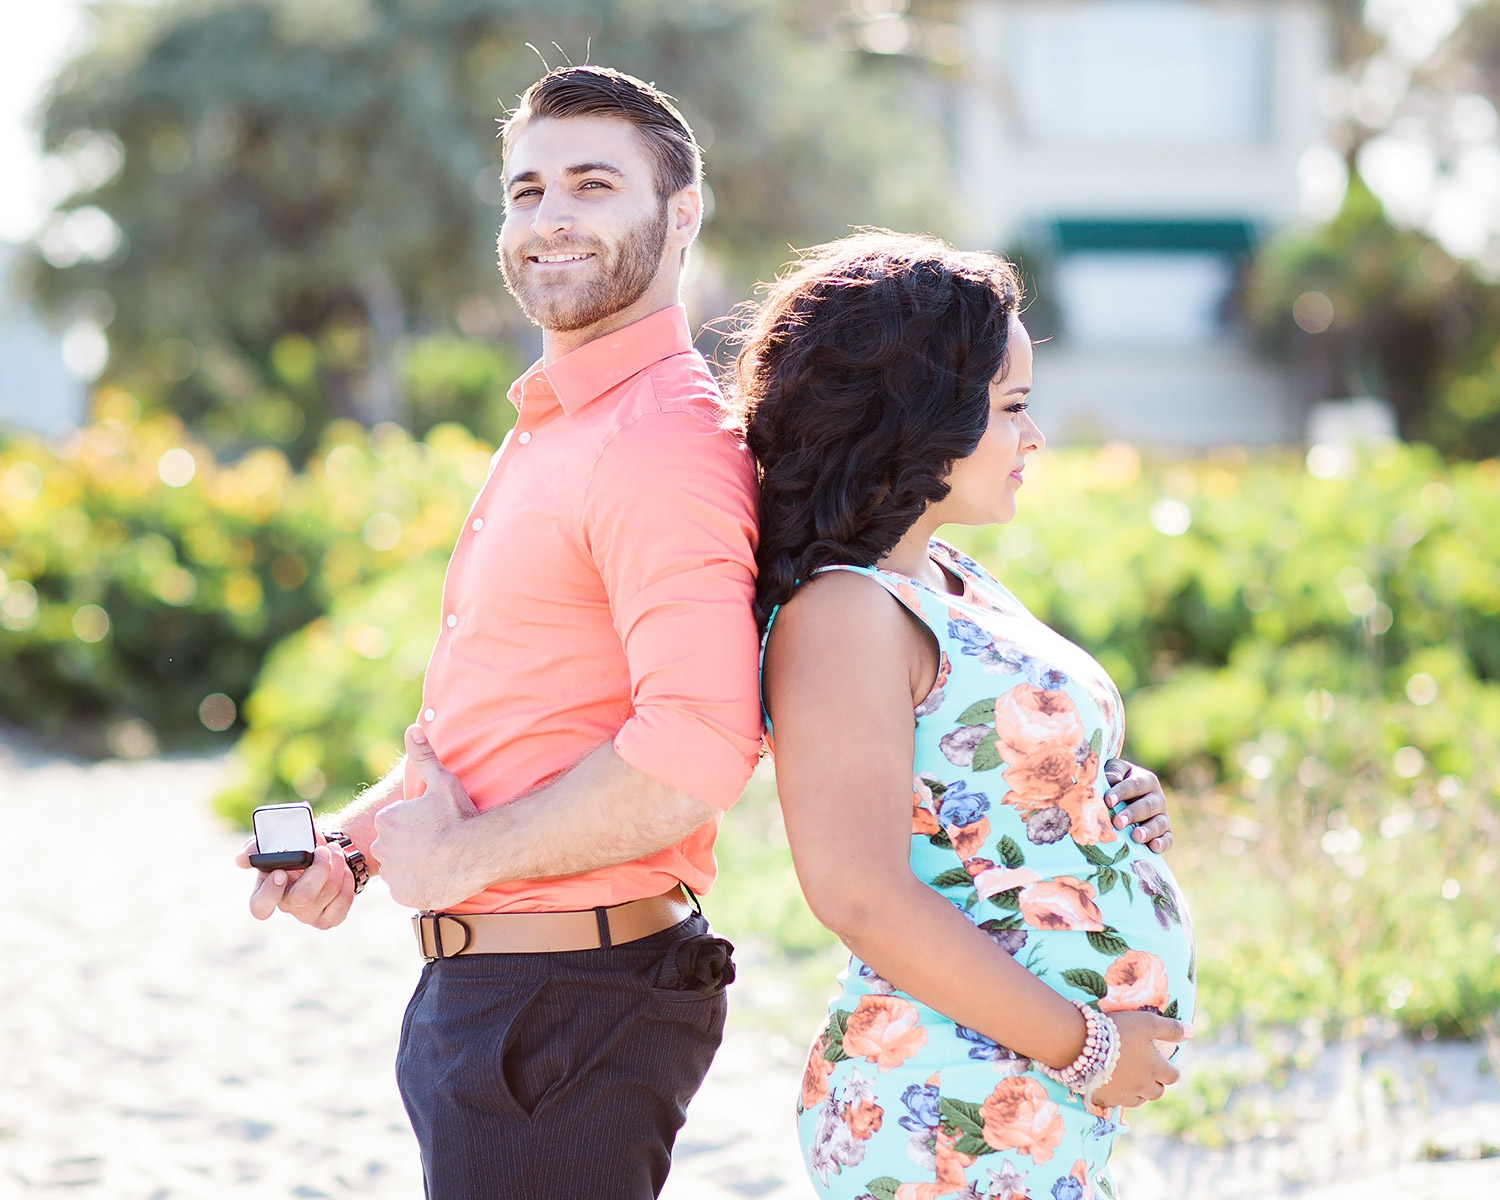 Beachside Maternity Photos Turns Into Surprise Proposal